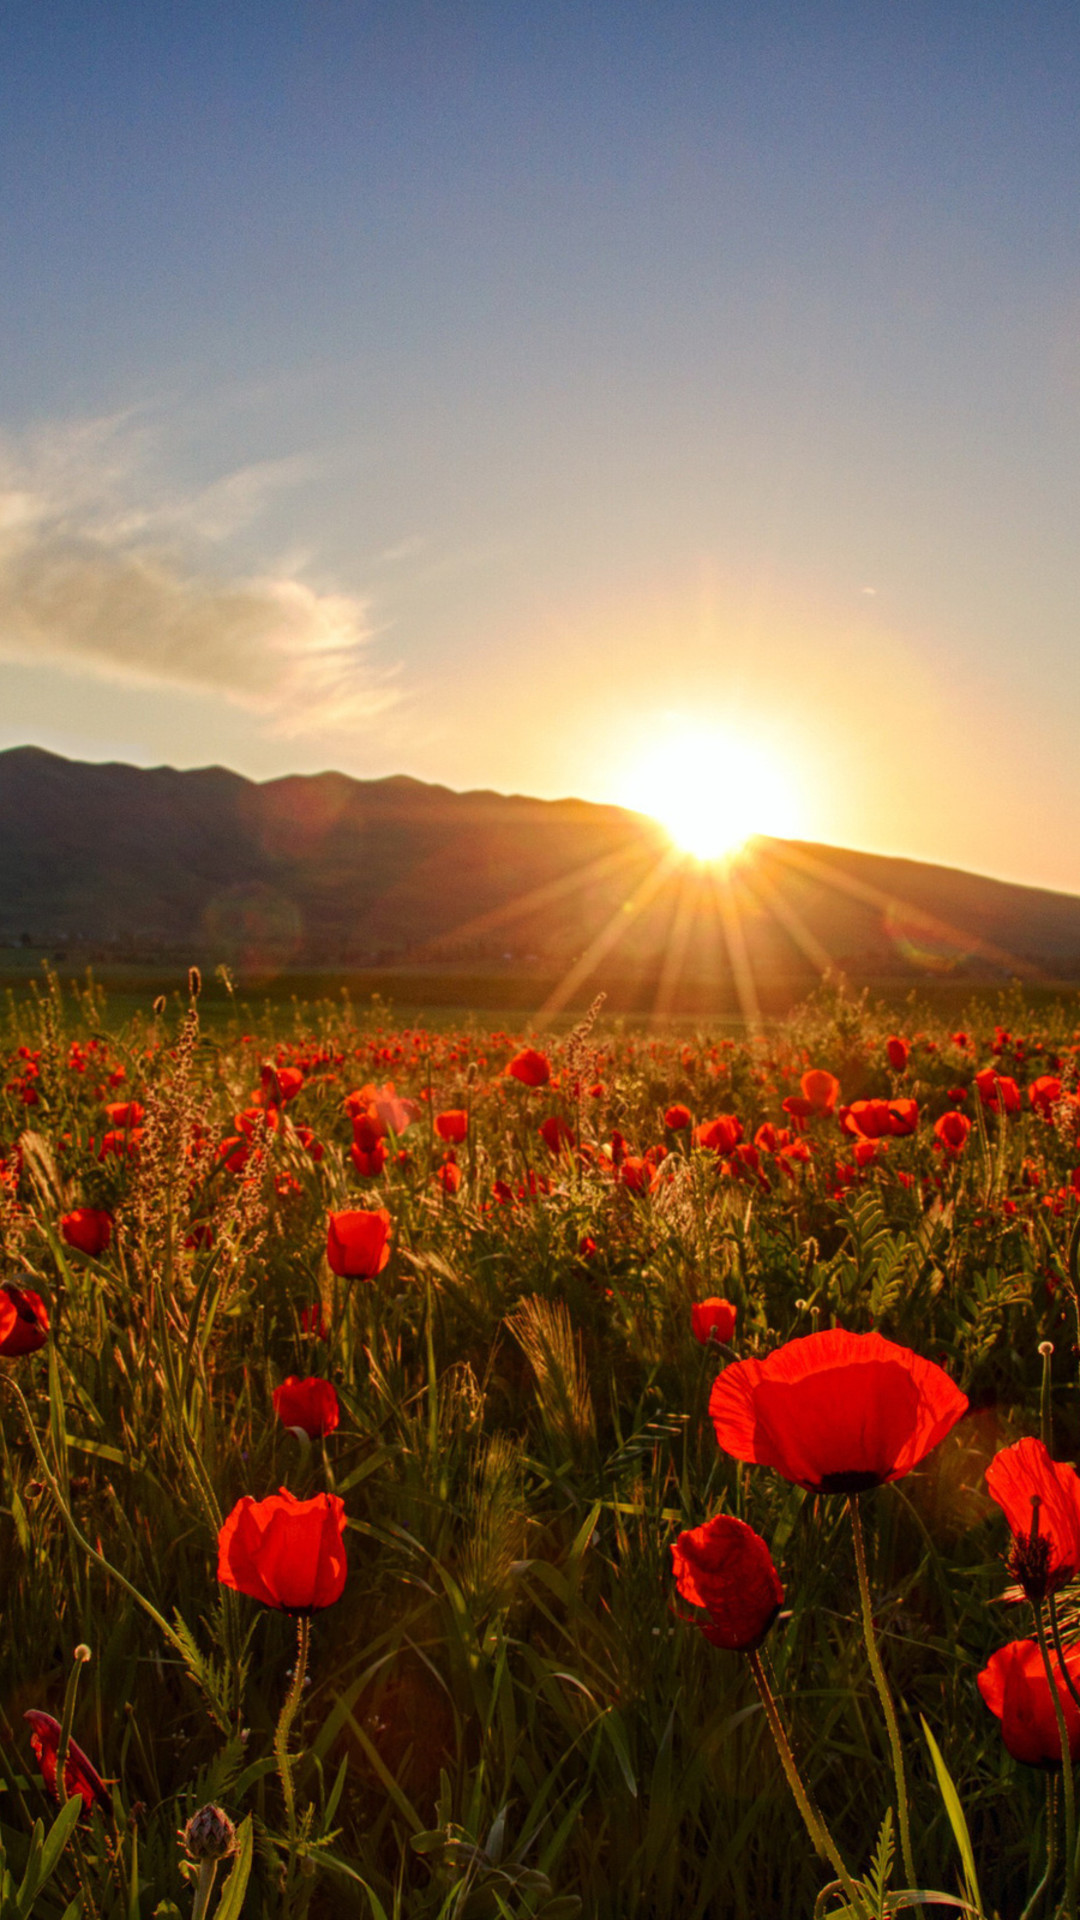 Wallpaper Download Sunset, field with poppies and hills, HD  Wallpaper, Download free